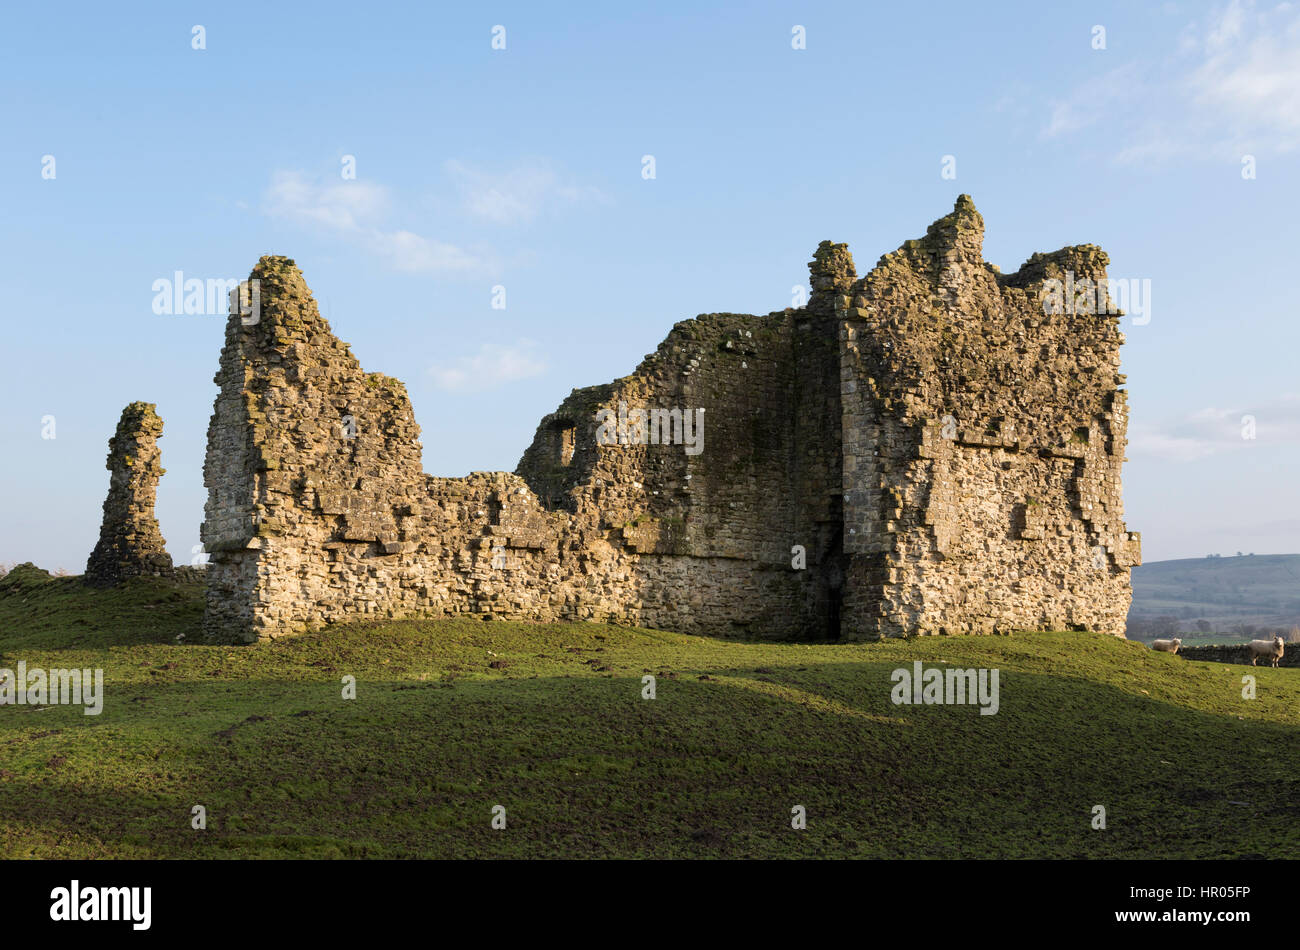 Bewcastle Castle, Cumbria, England - remains of the the west curtain wall and gatehouse. - Stock Image